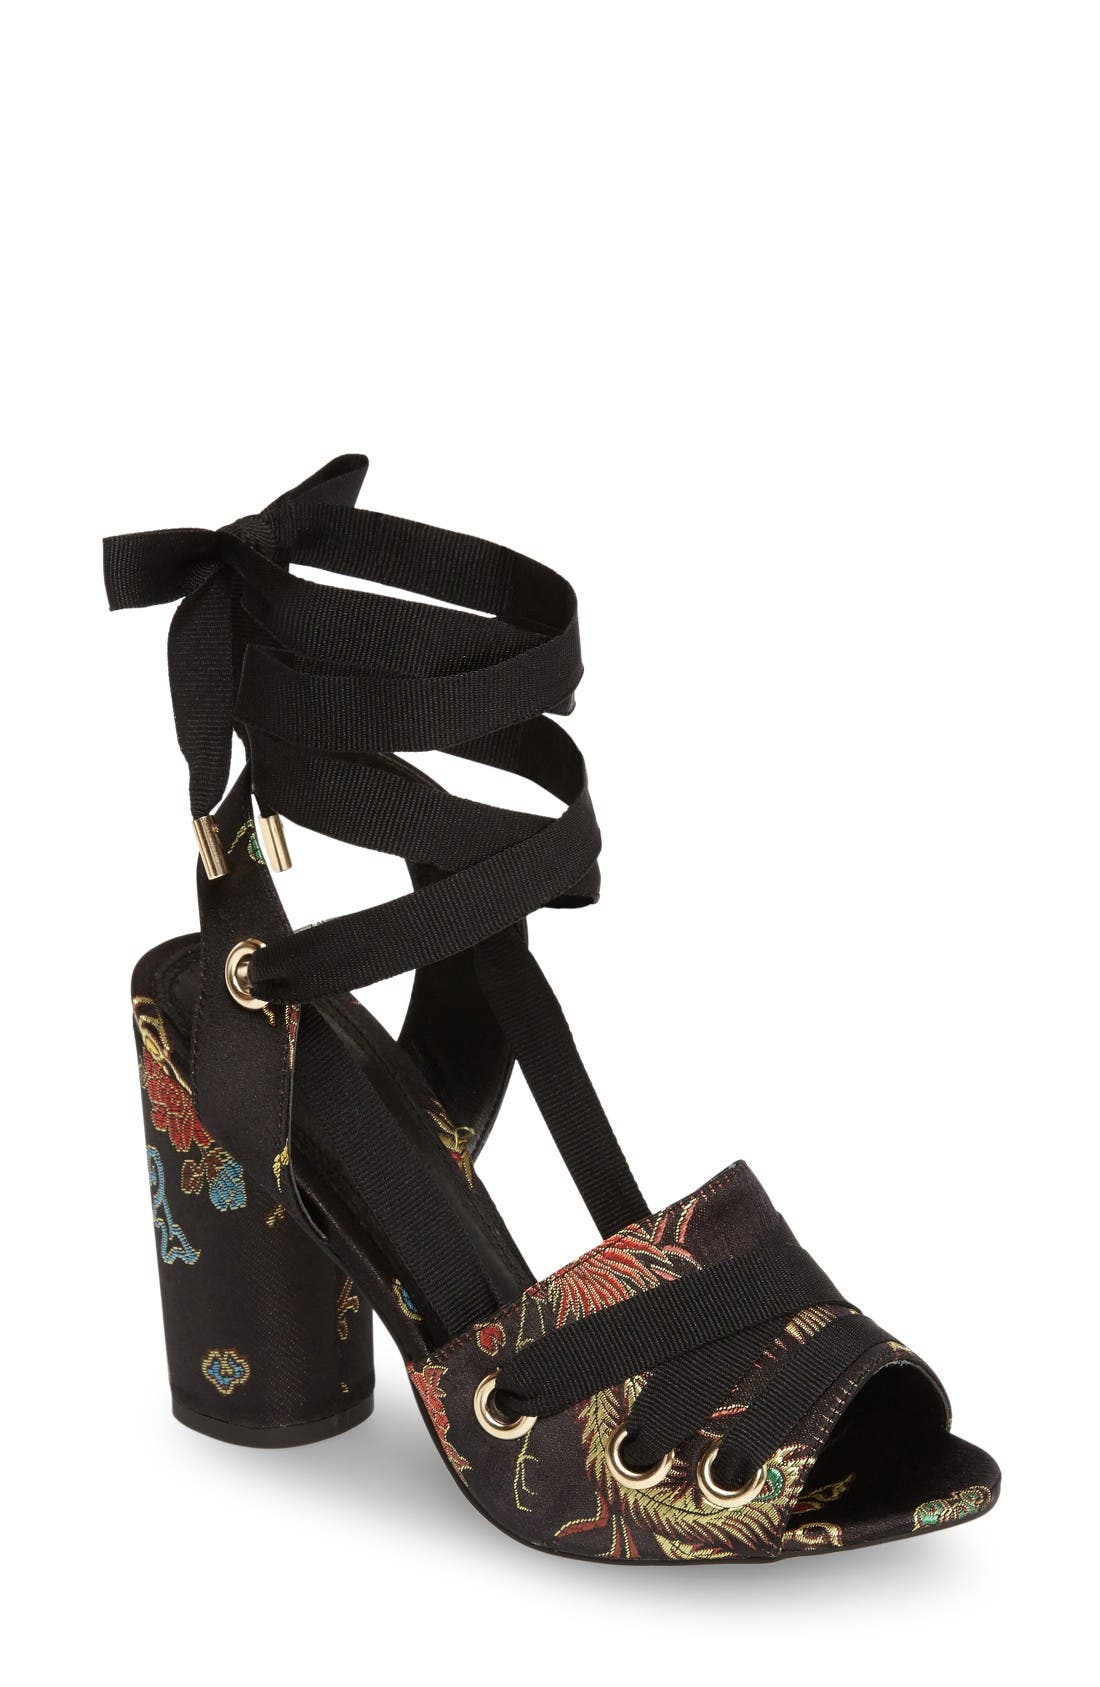 Alternate Image 1 Selected - Topshop Roscoe Sandal (Women)